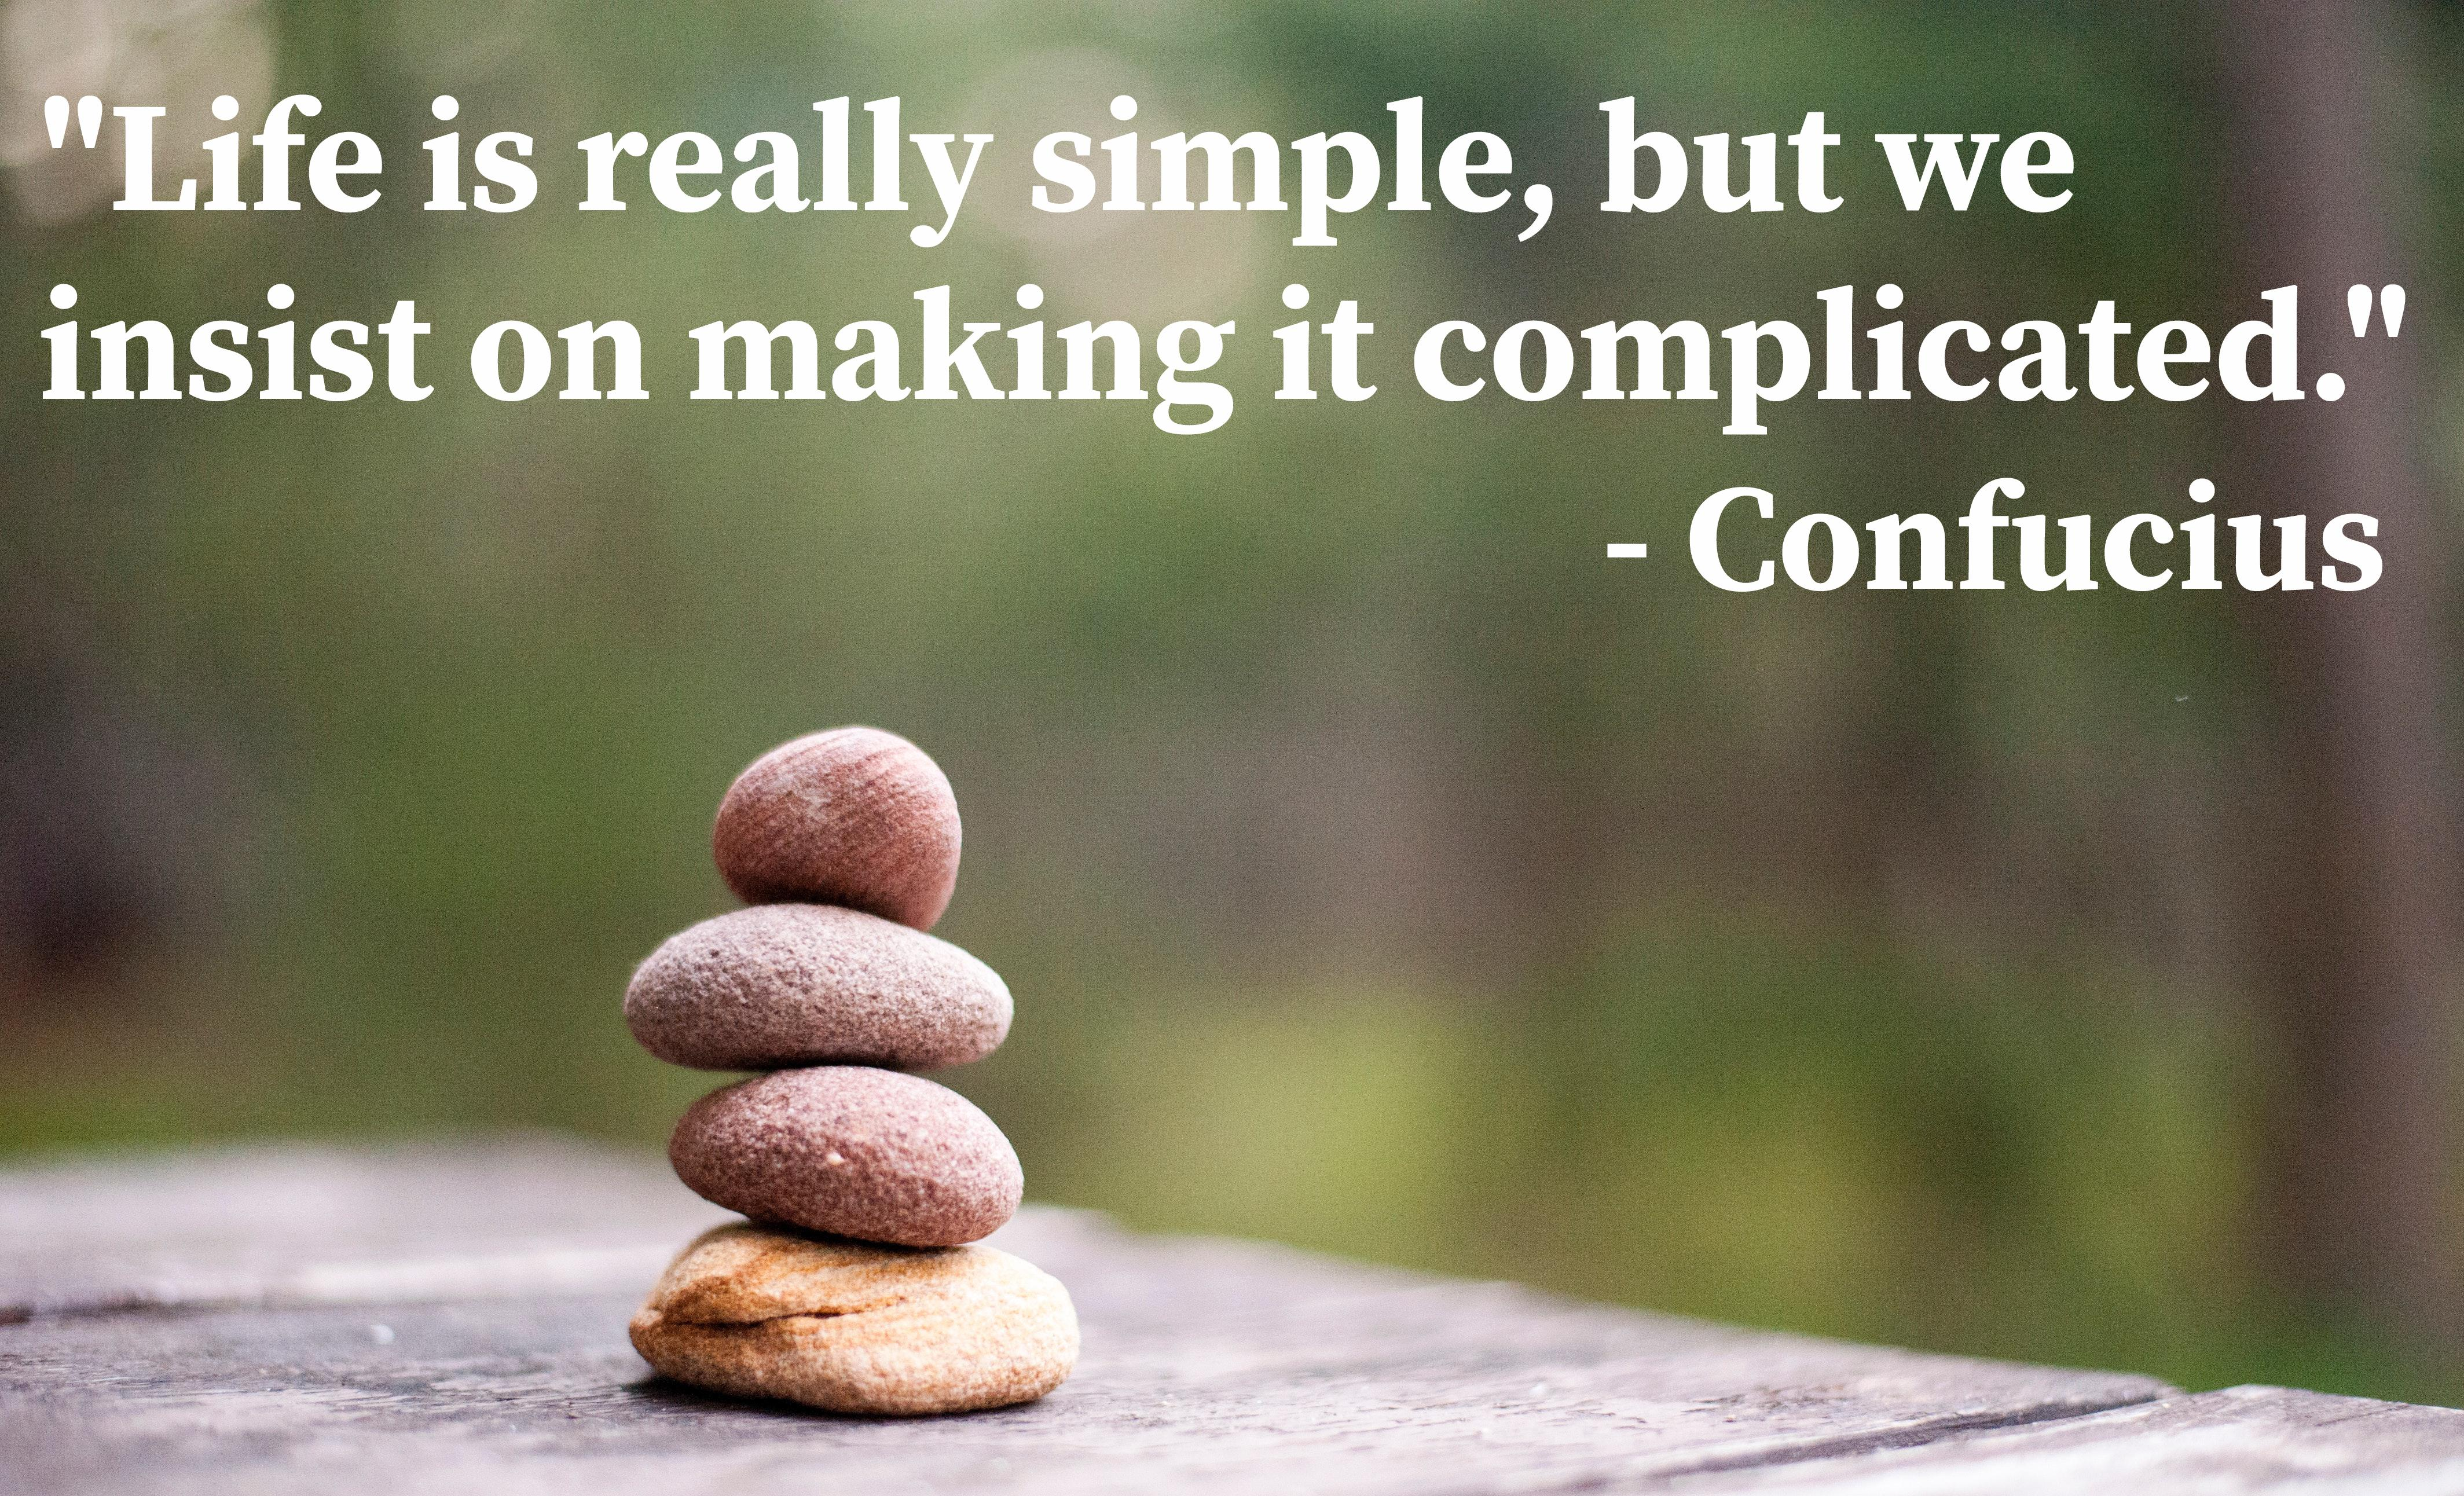 """Life is really simple, but we insist on making it complicated."" – Confucius [4256 x 2584]"